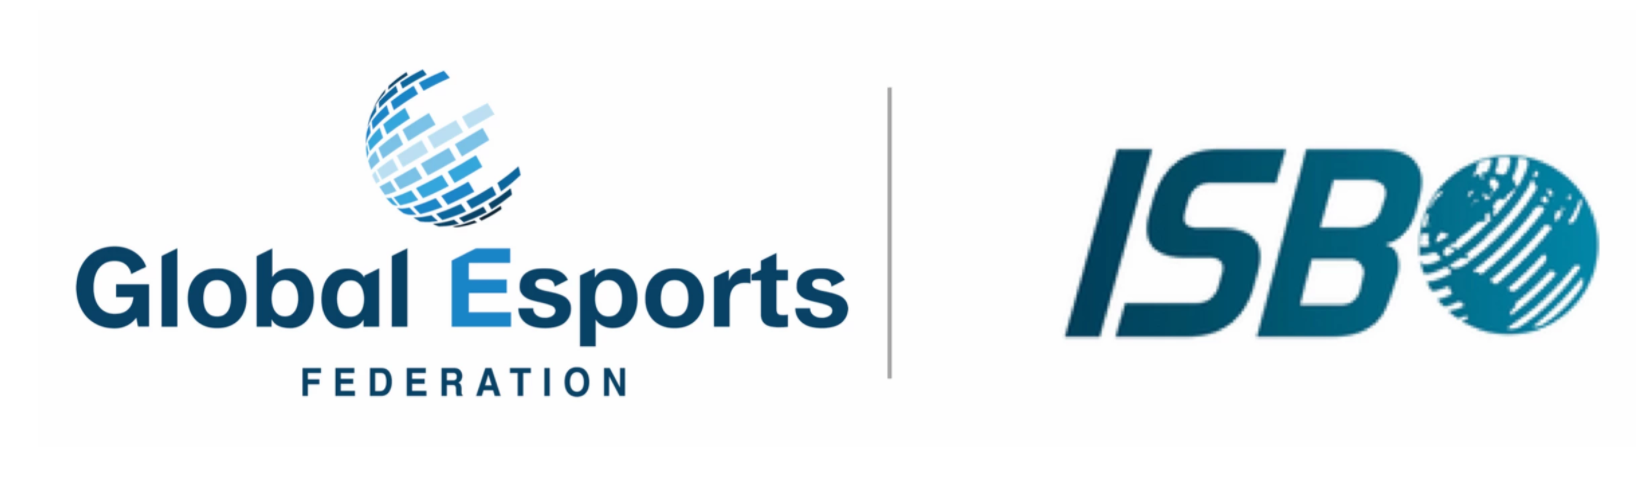 Global Esports Federation names ISB as broadcast and content strategy partner